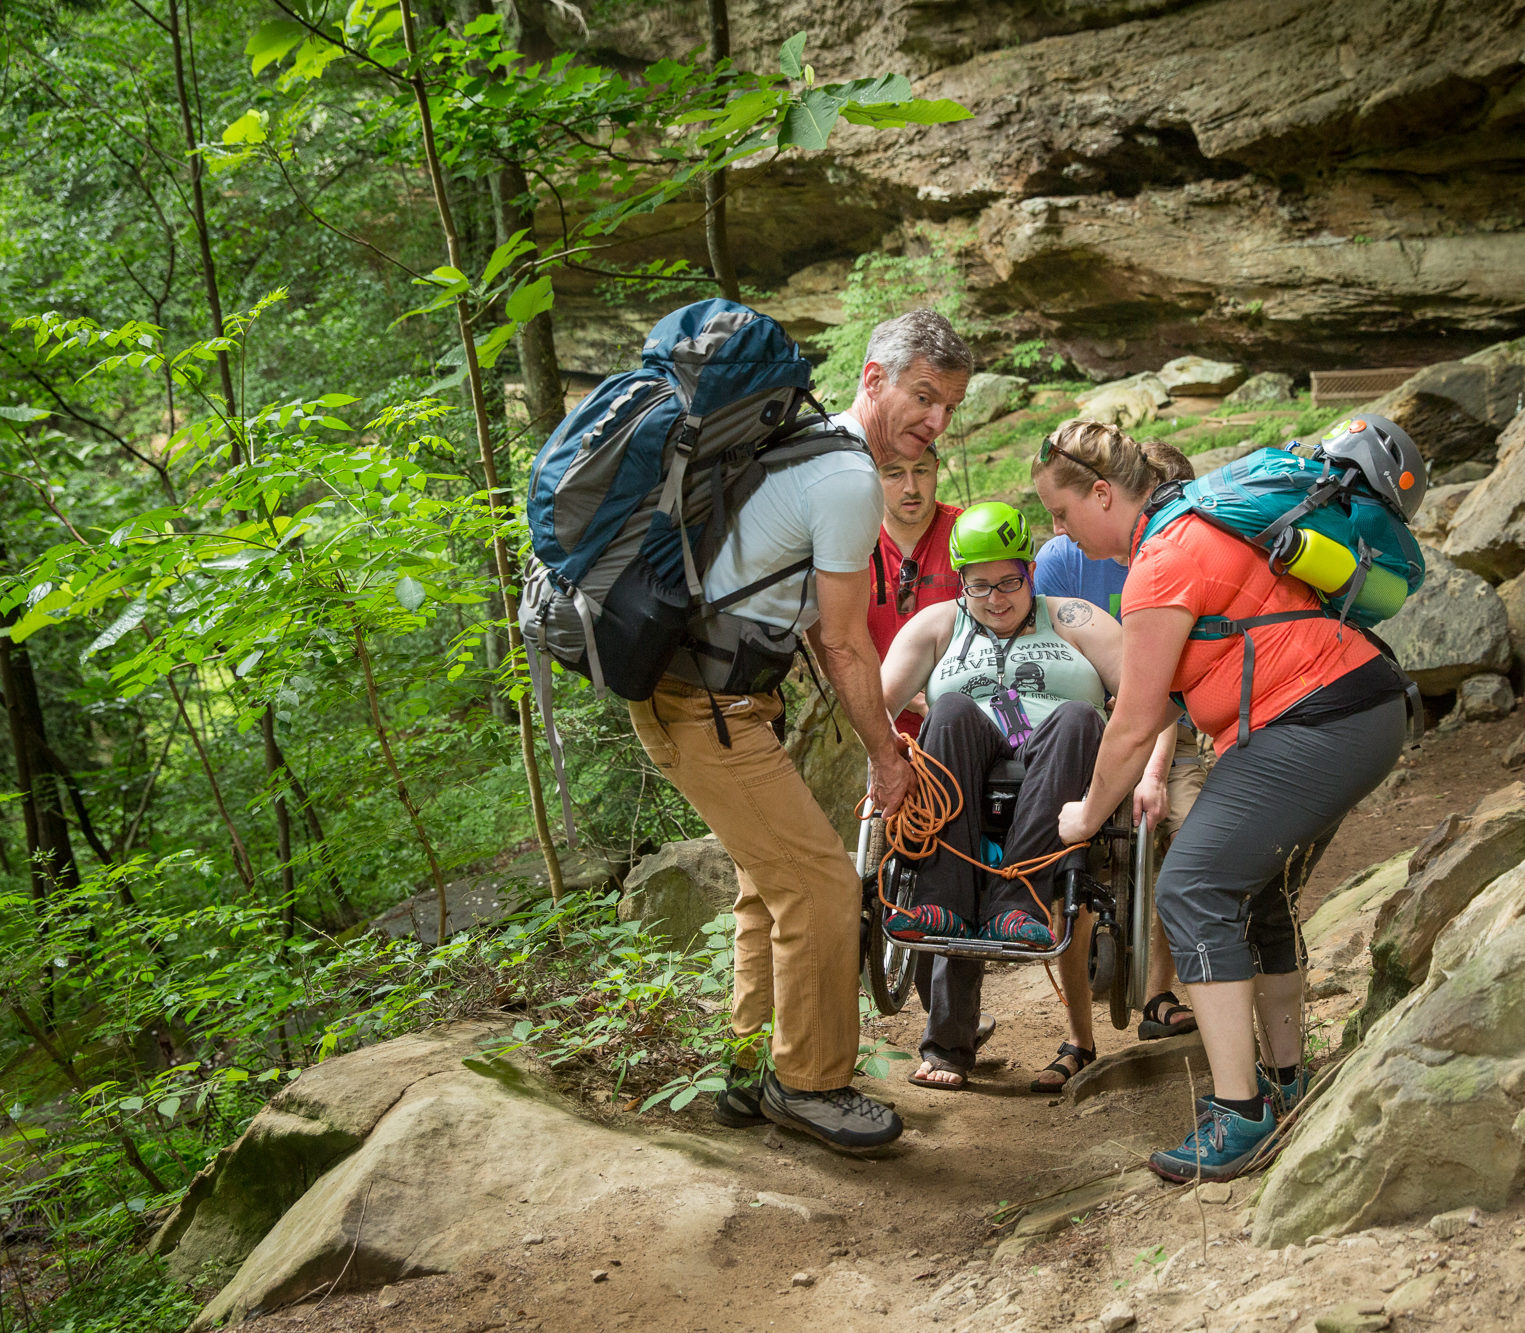 Volunteers helping climber in their wheelchair to the crag on Red River Gorge Trip in 2018